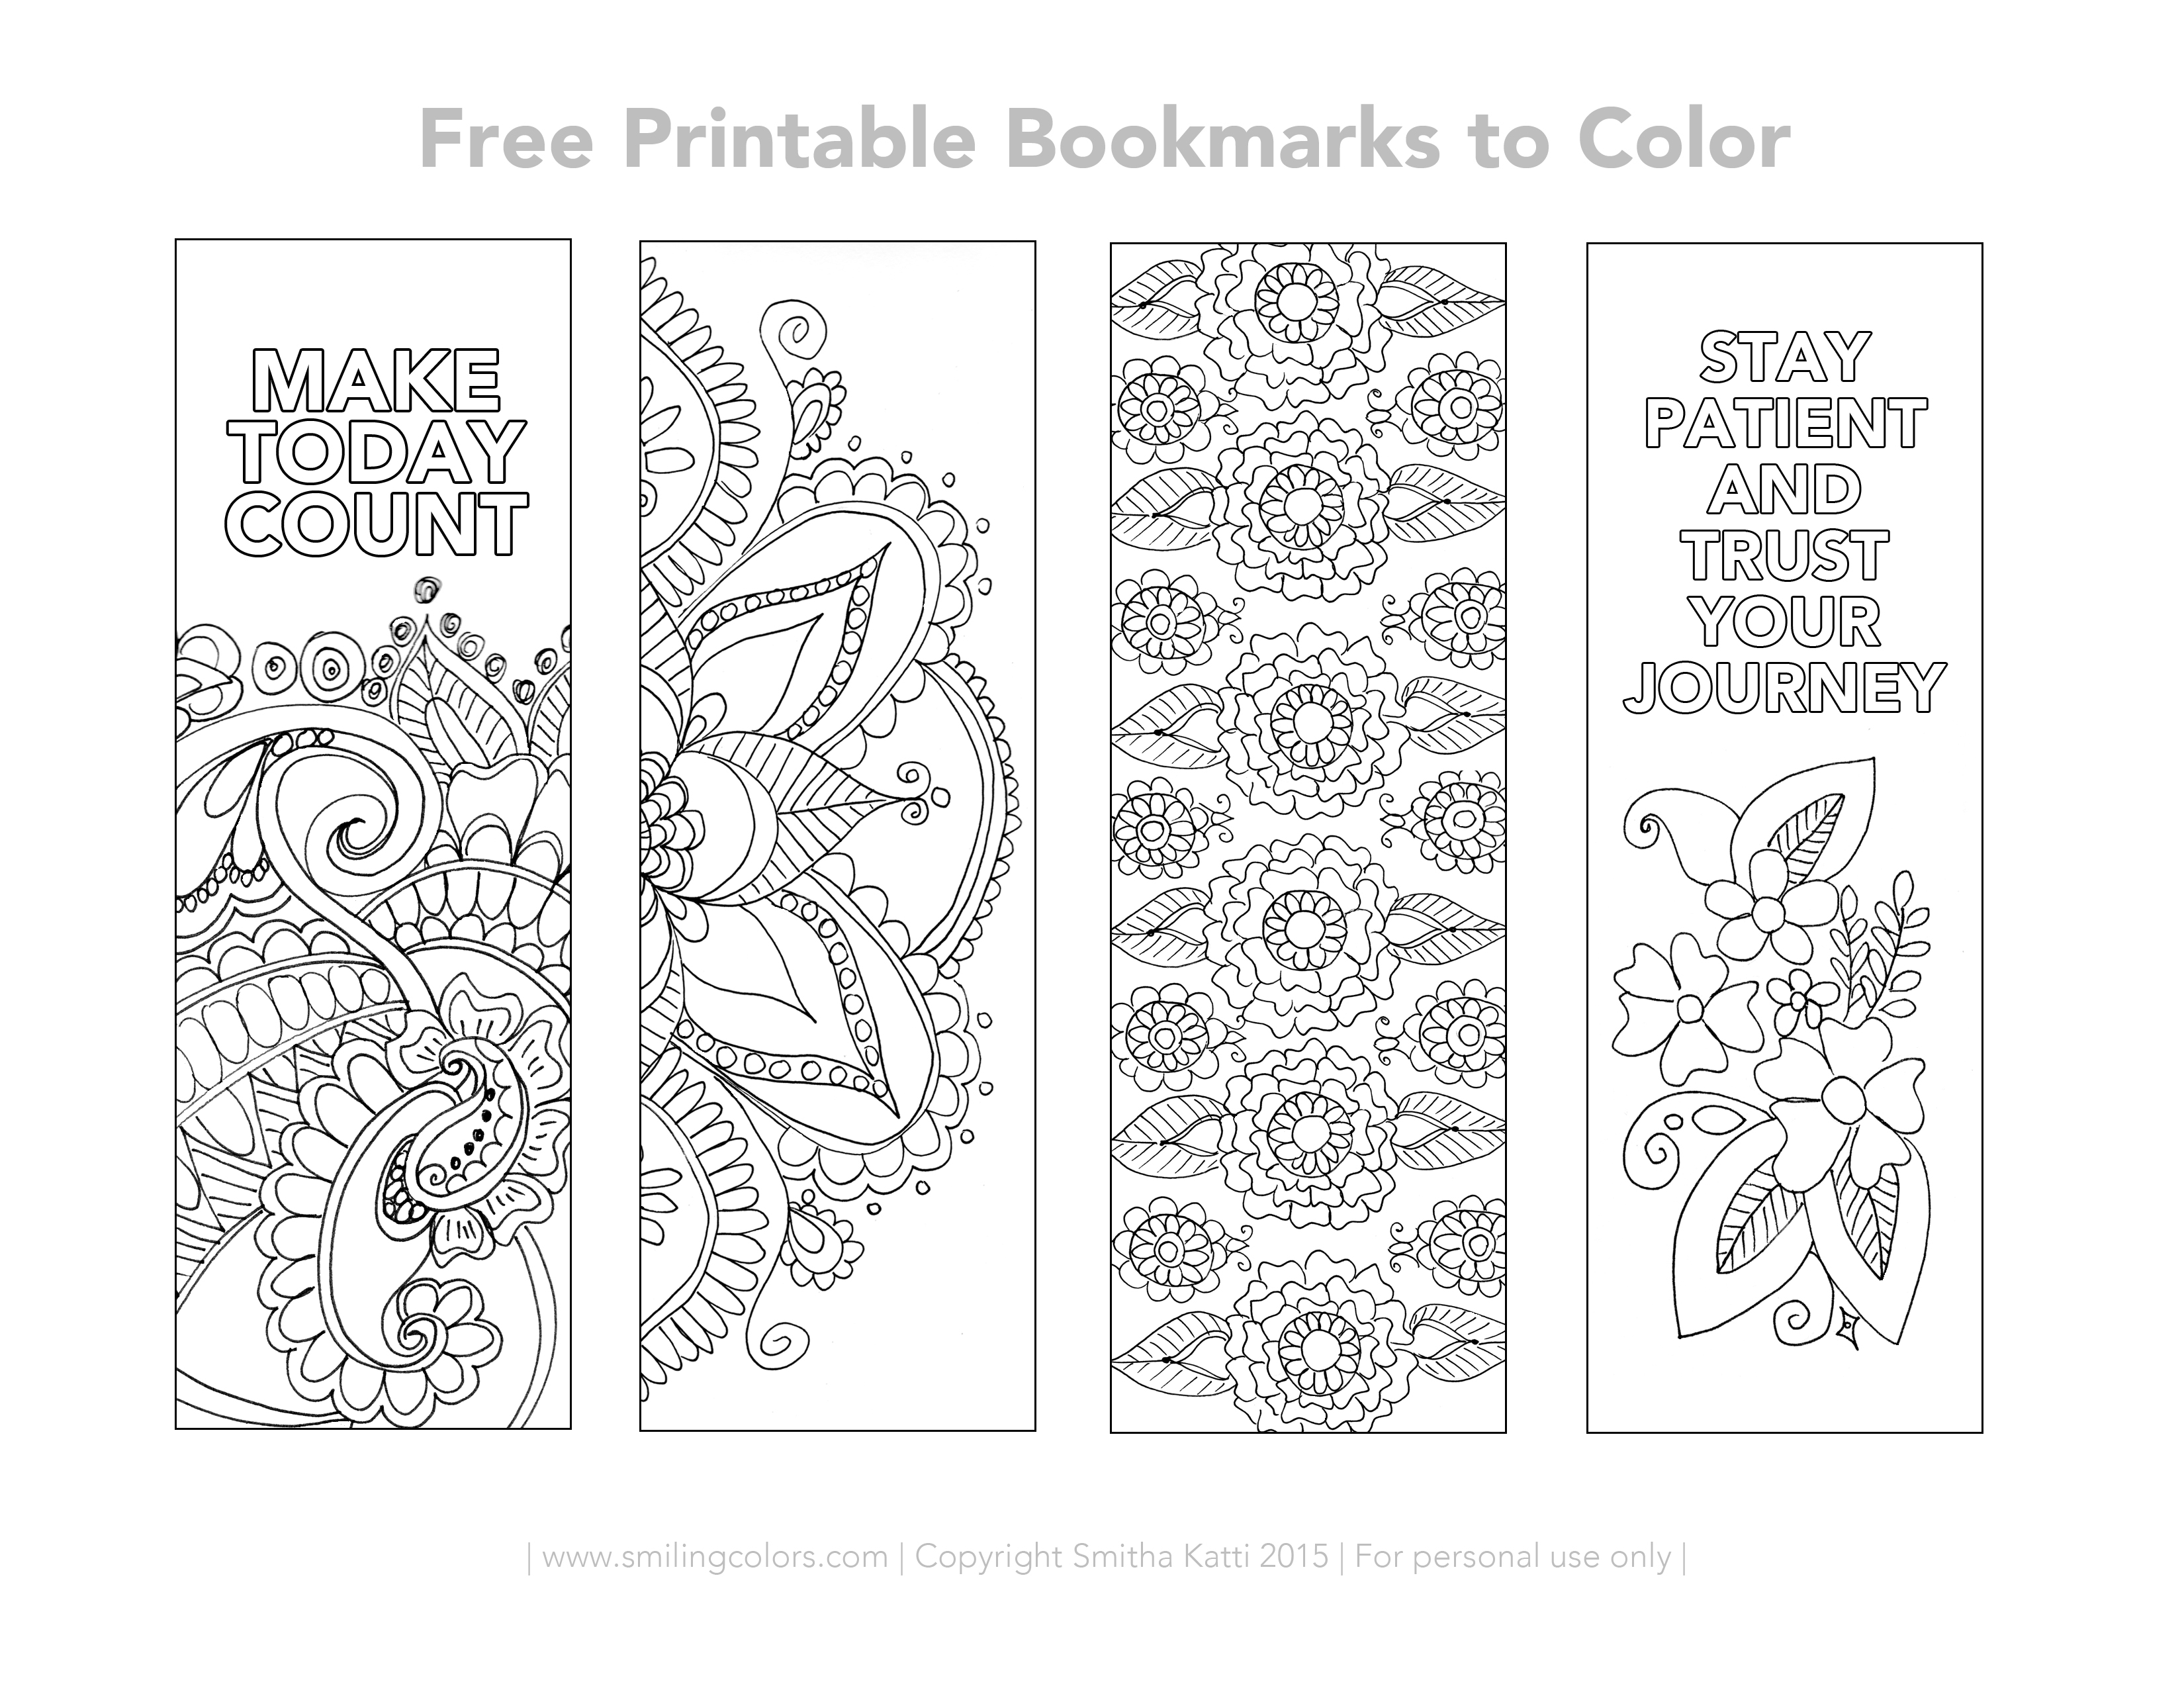 image regarding Printable Bookmarks to Color named Absolutely free Printable Bookmarks in direction of coloration - Smitha Katti